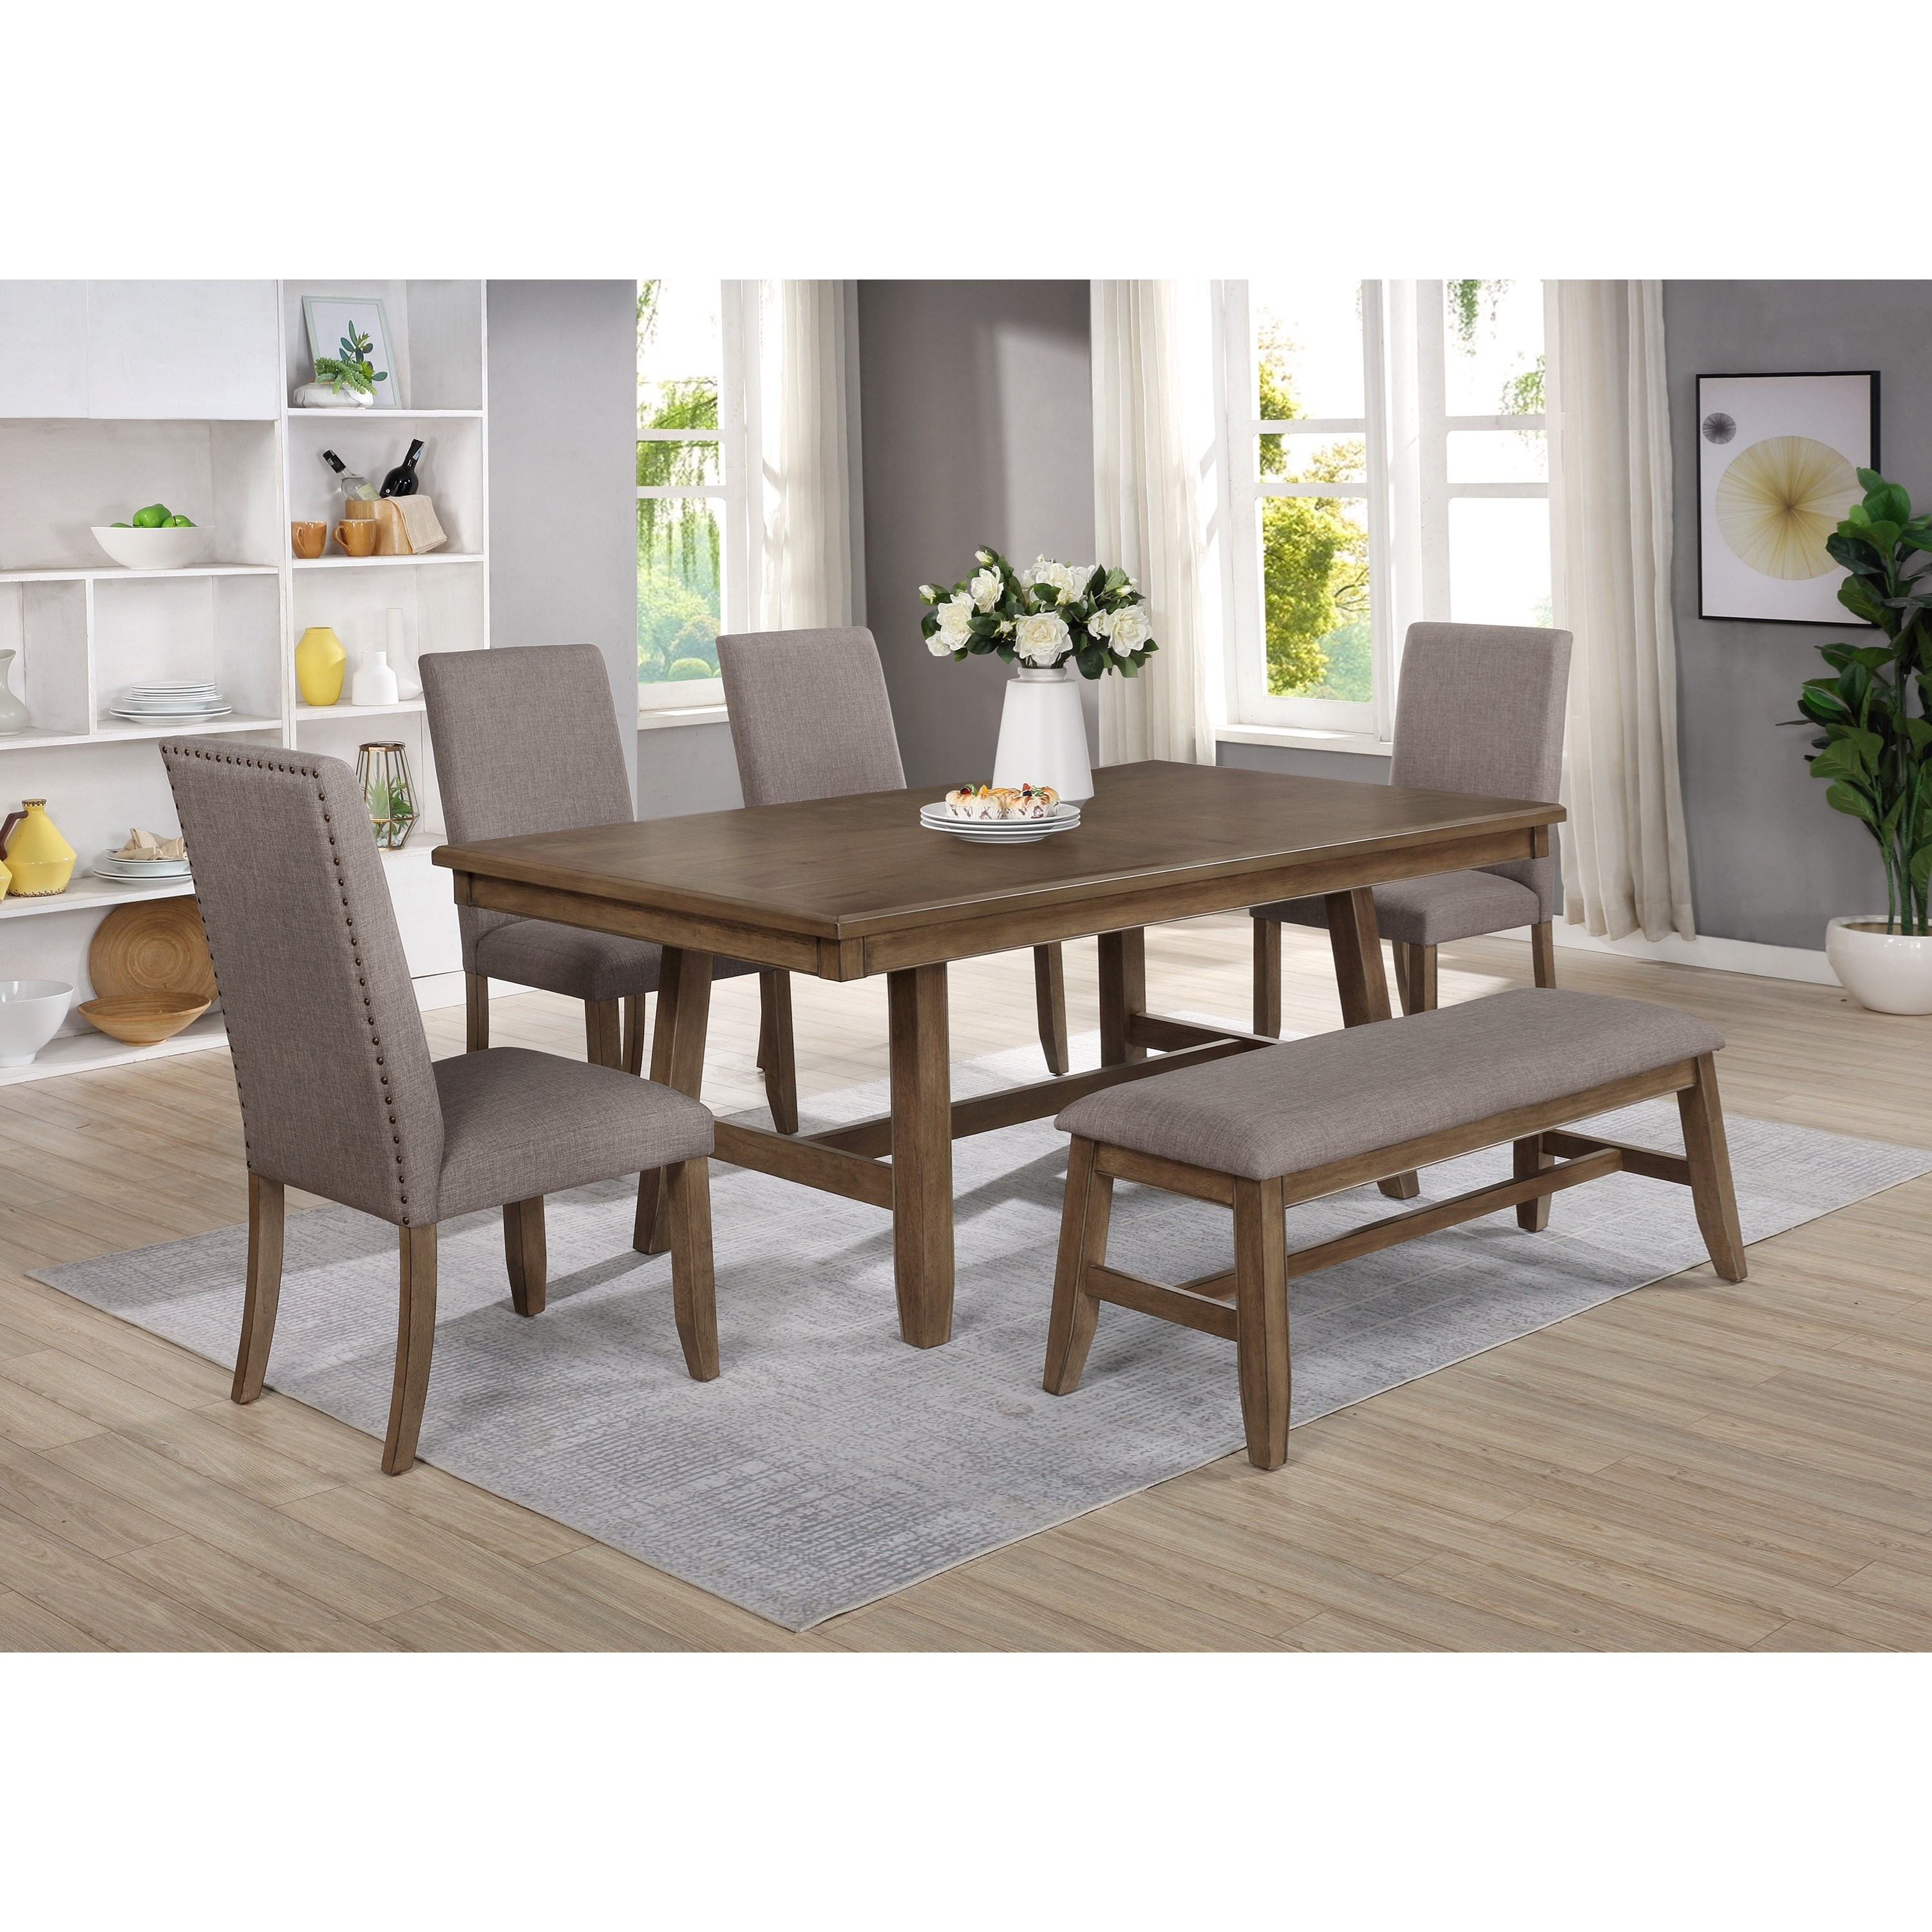 Manning 6-Piece Table and Chair Set with Bench by Crown Mark at Darvin Furniture